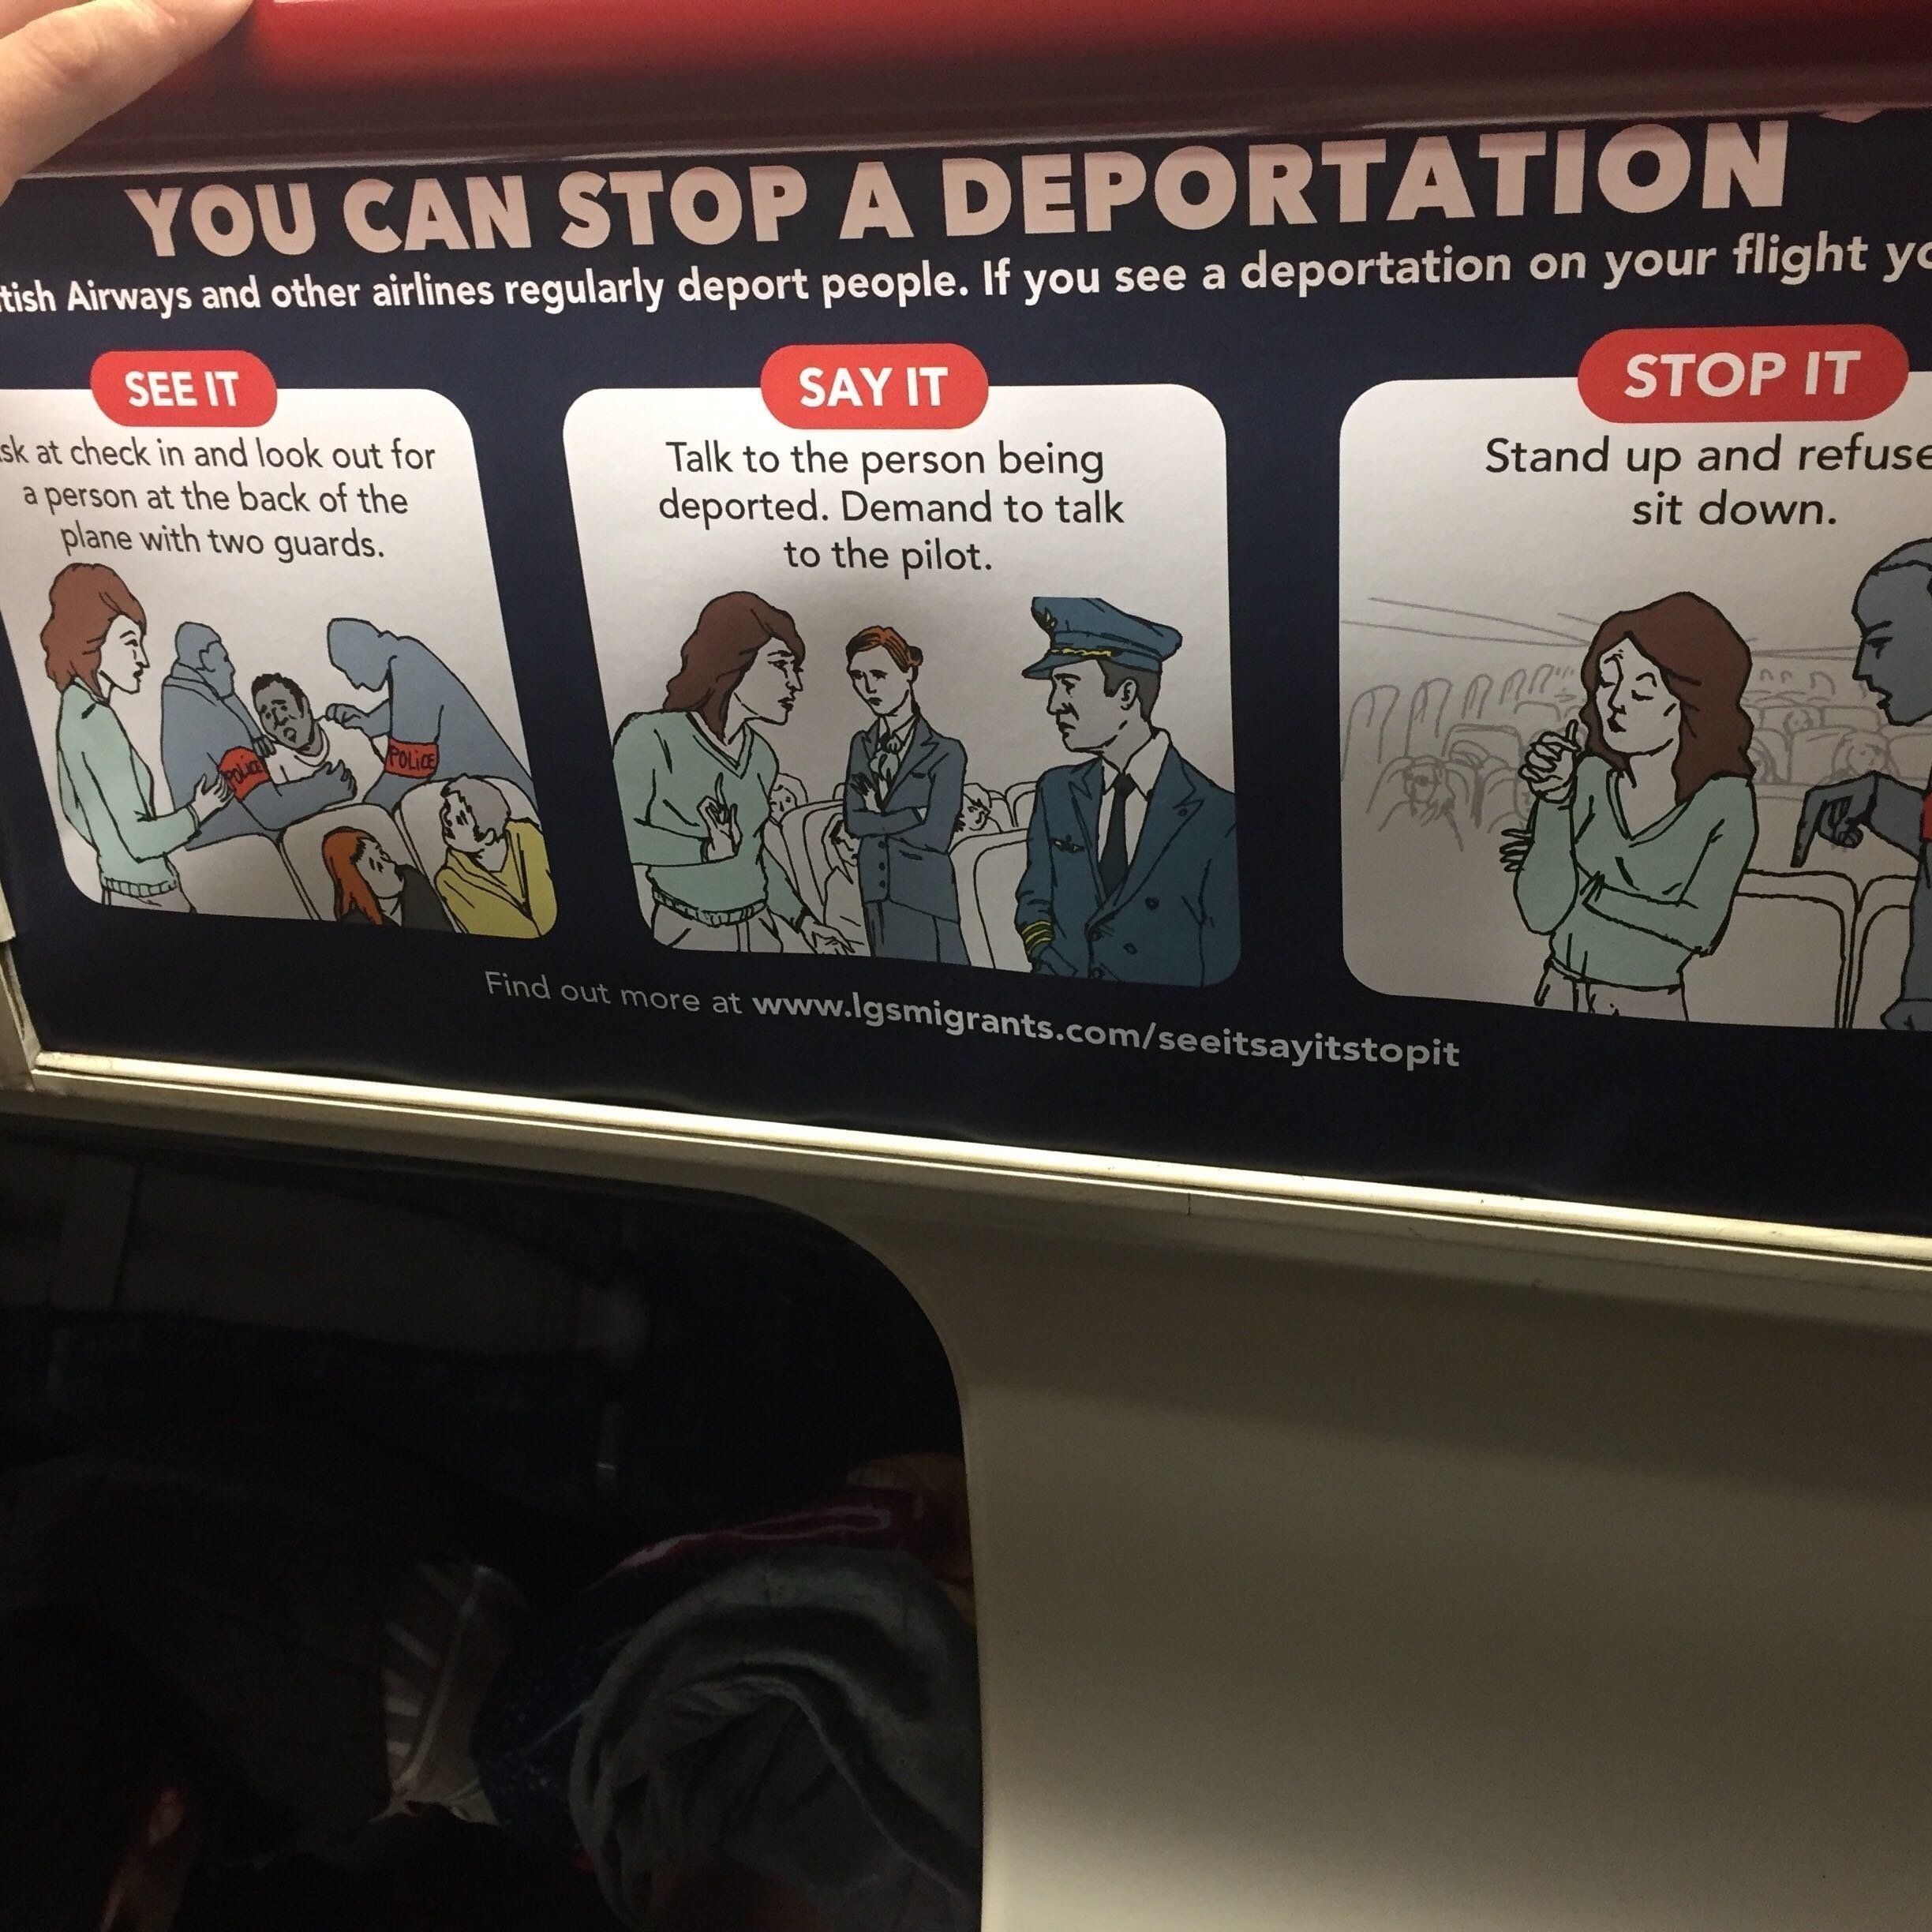 Anti-deportation posters appeared on the Tube on Tuesday